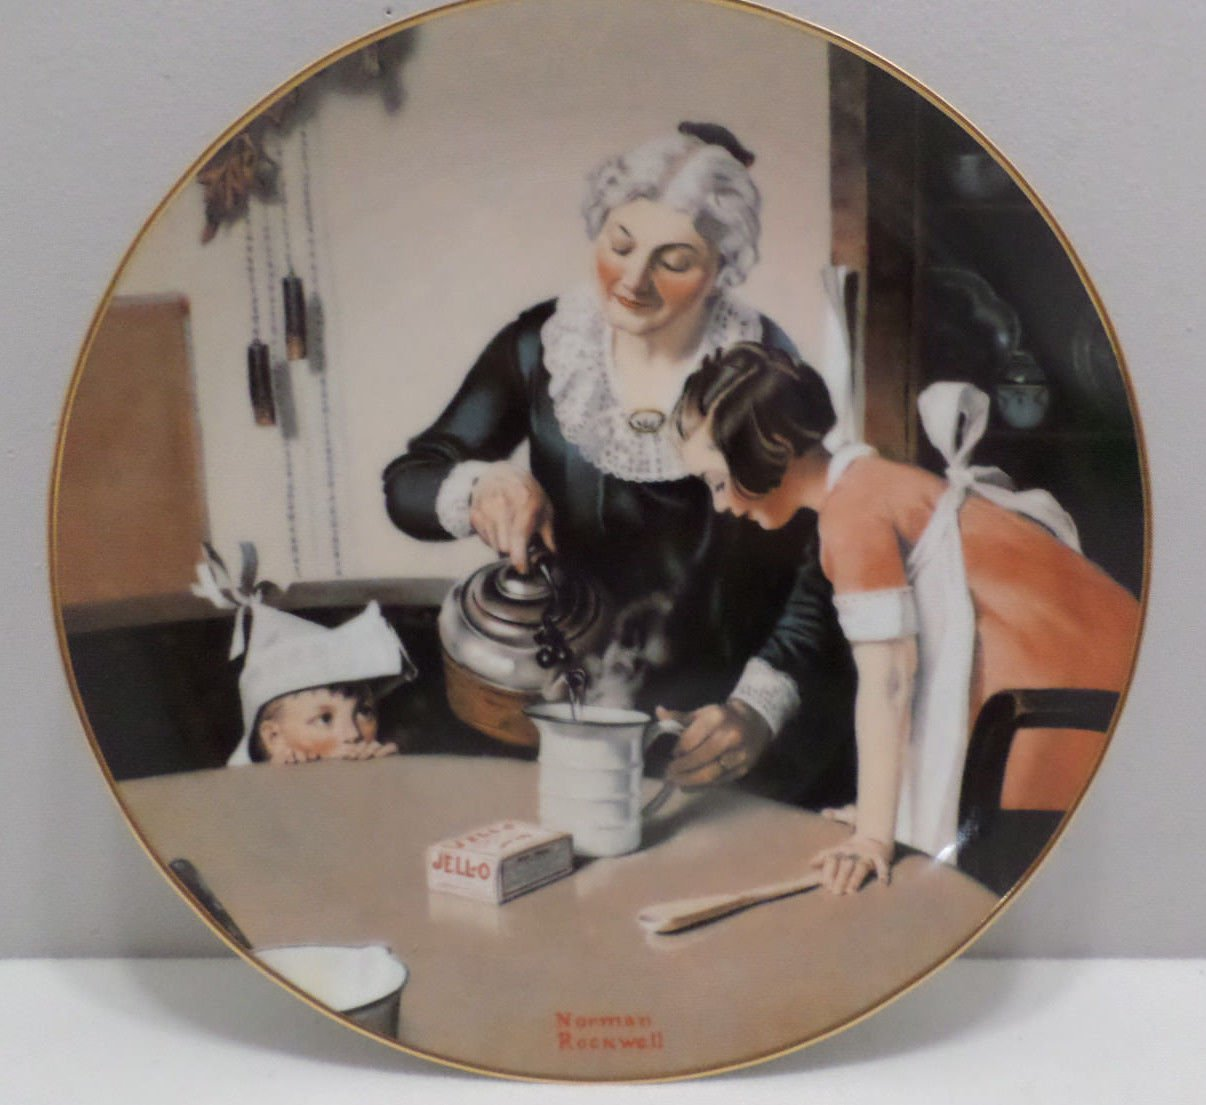 1985 Collector Plate Mom's Special Treat by Norman Rockwell Gentle Memories